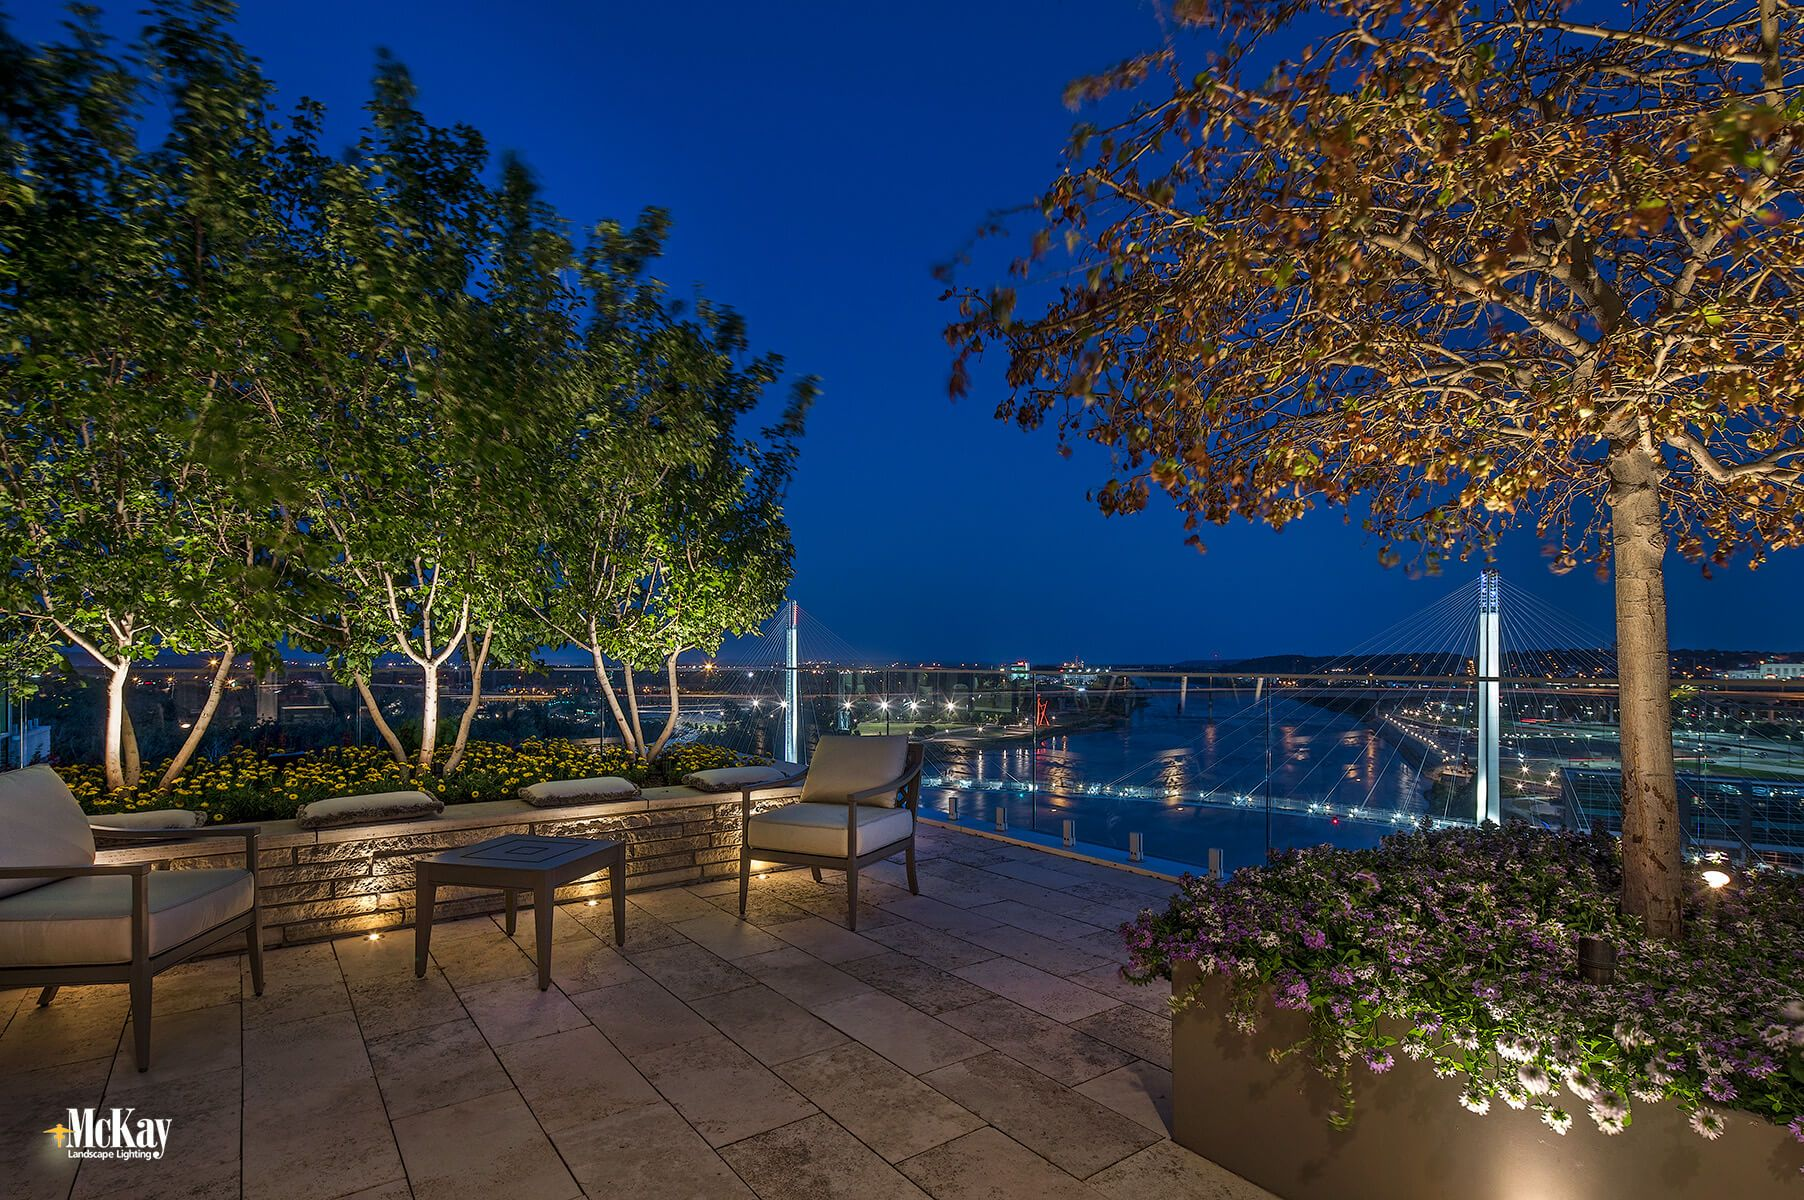 See More Photos Of The Landscape Lighting Design For This Relaxing Rooftop  Garden Patio Located In